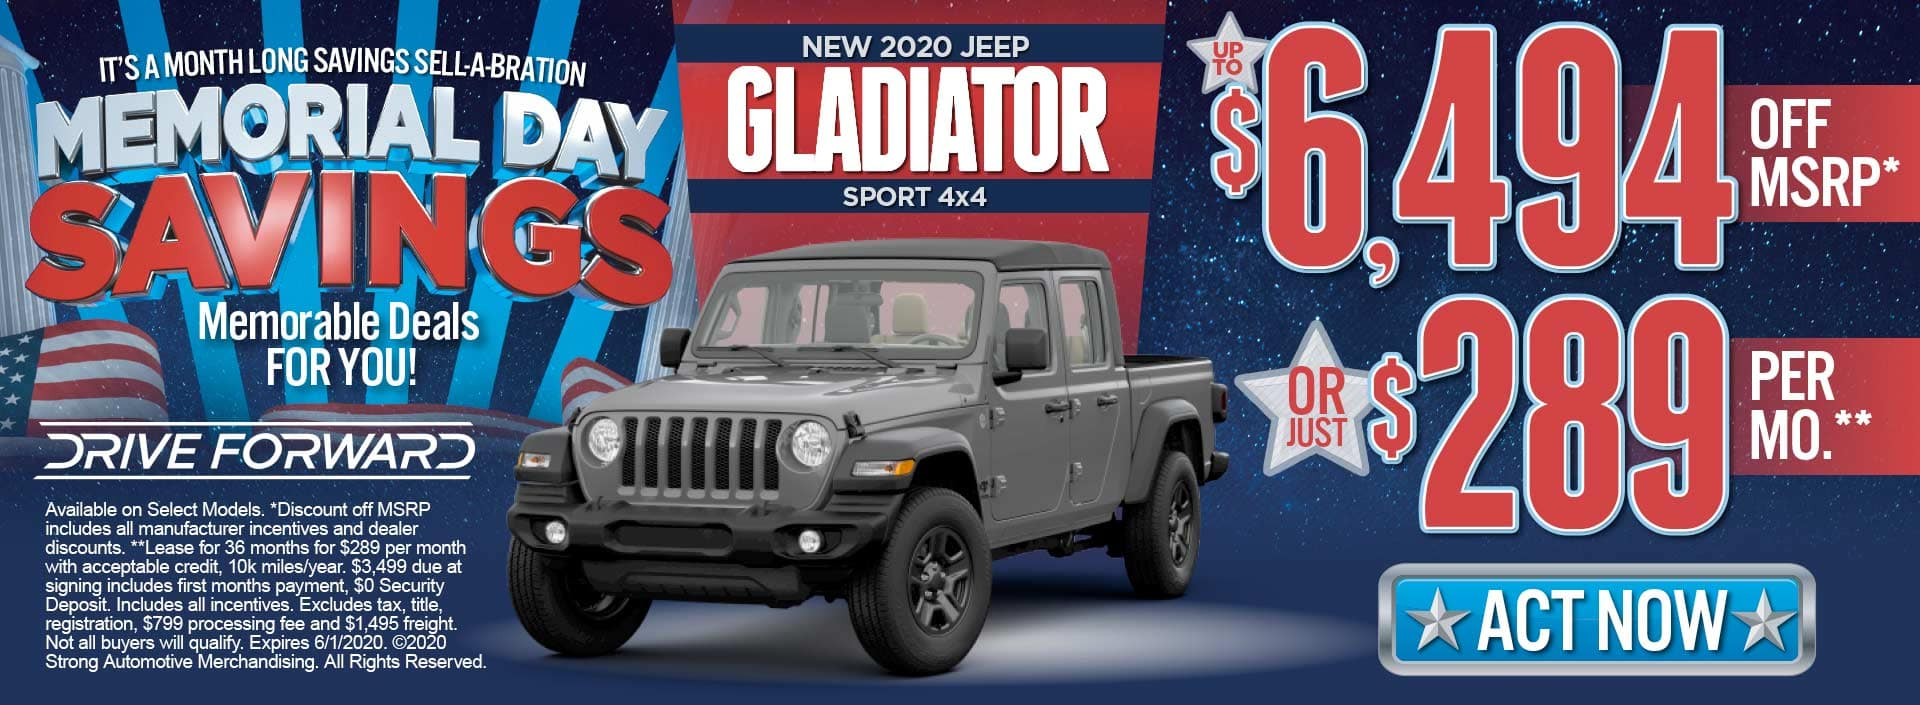 New jeep gladiator to $6494 off msrp* or just $289 per month** act now